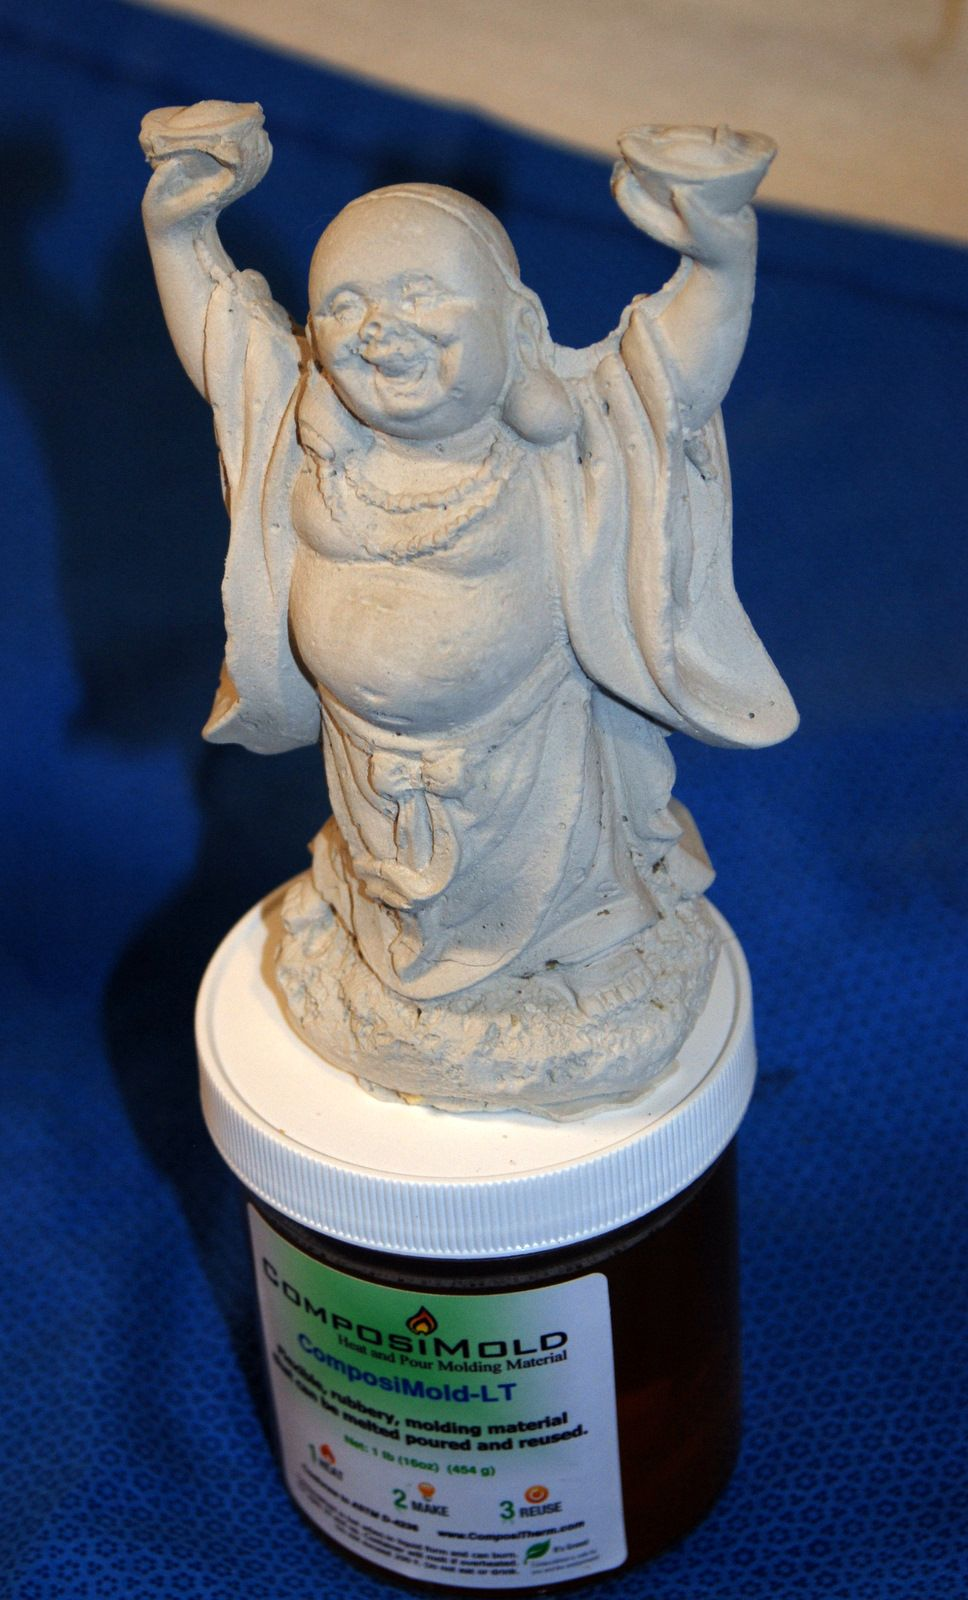 The Buddha was cast with plaster after we made a mold of a